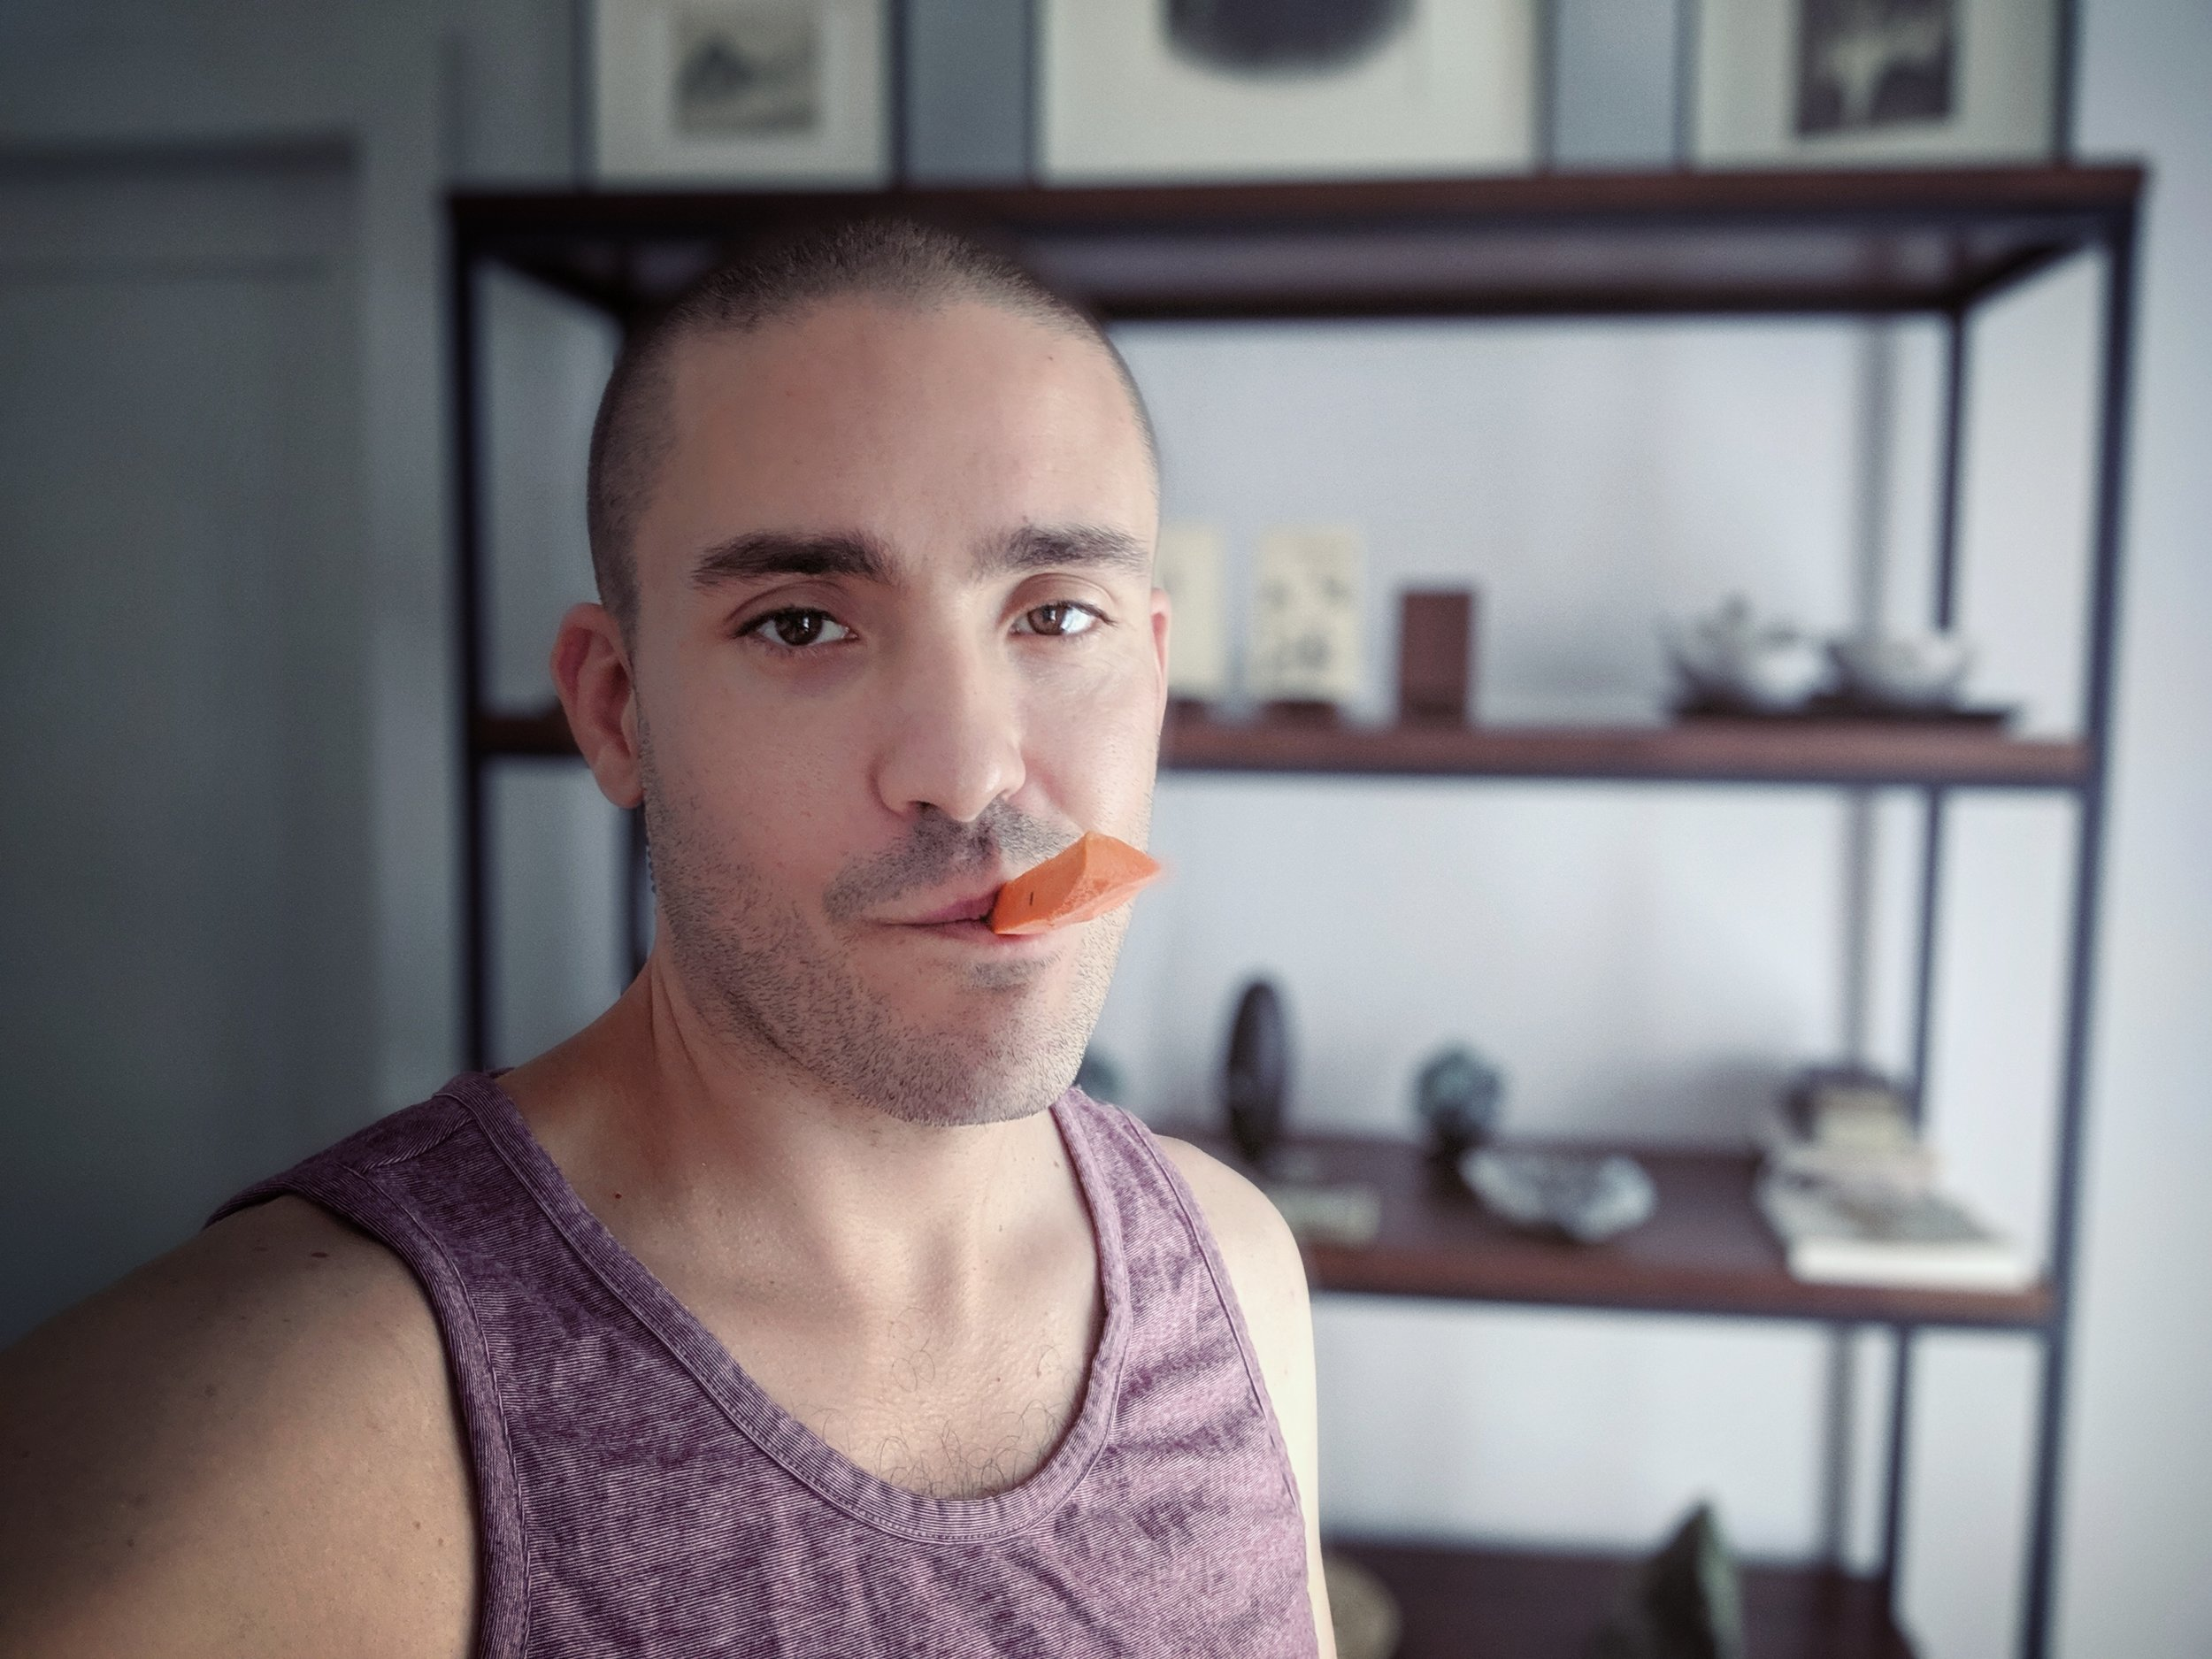 adam with carrot